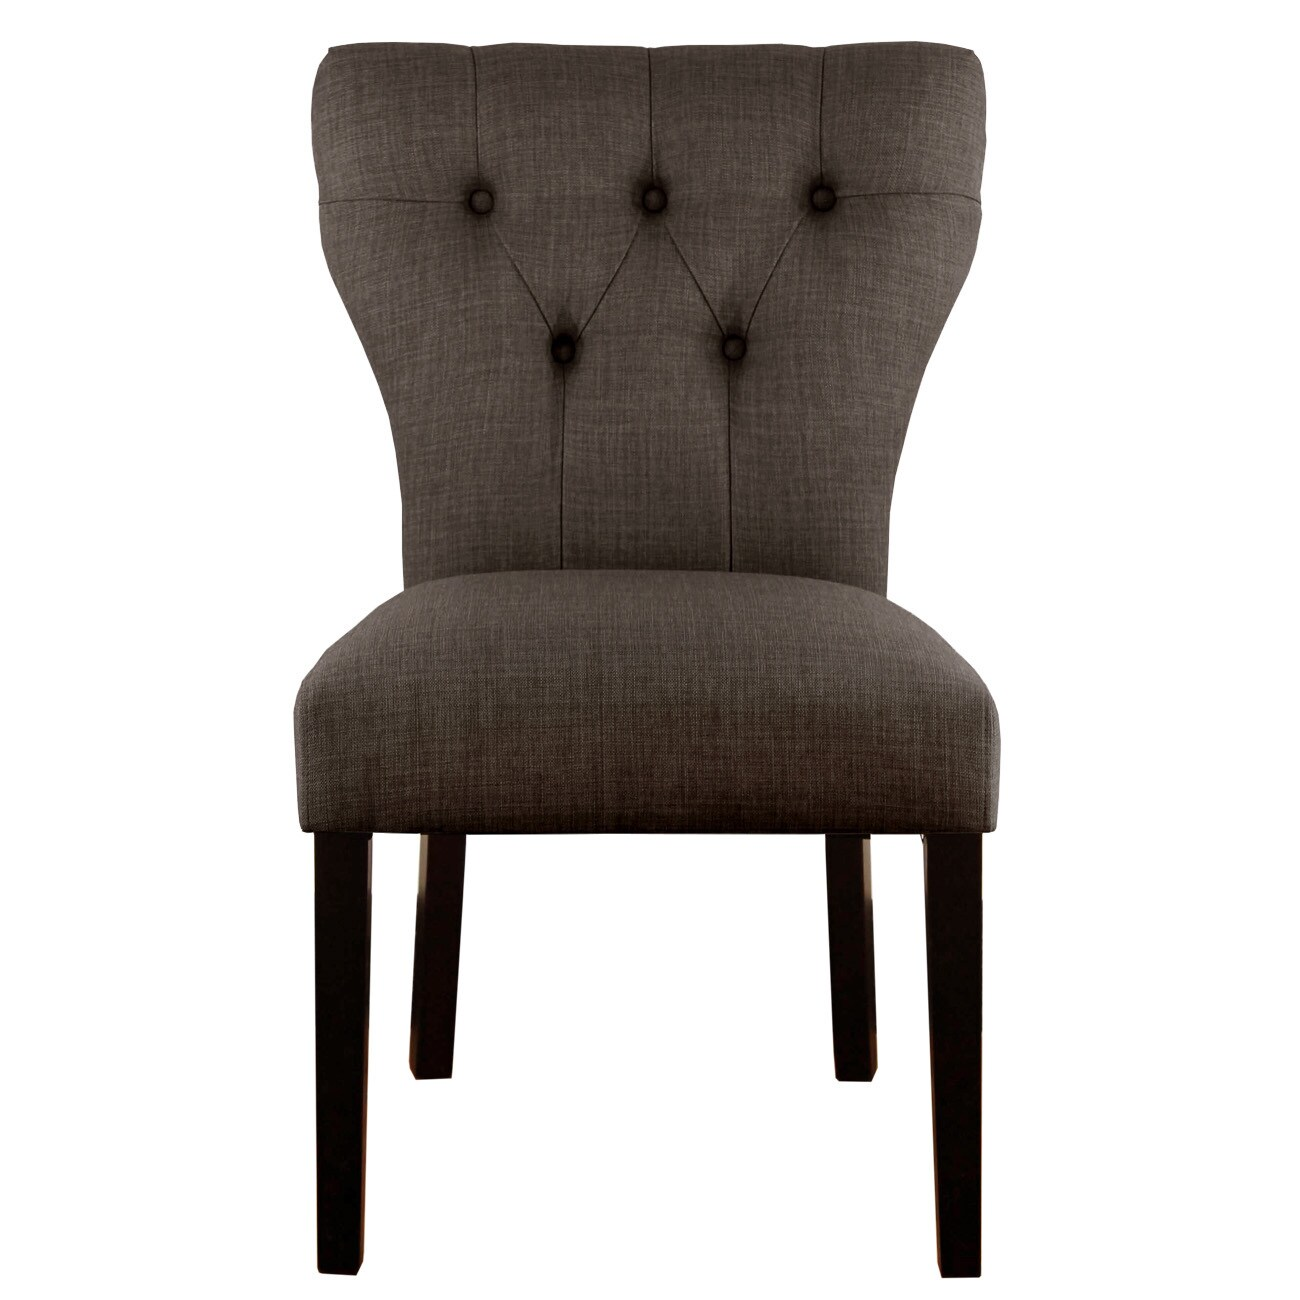 Shop skyline furniture marlow asphalt espresso polyester rubberwood tufted hourglass dining chair free shipping today overstock com 11992919